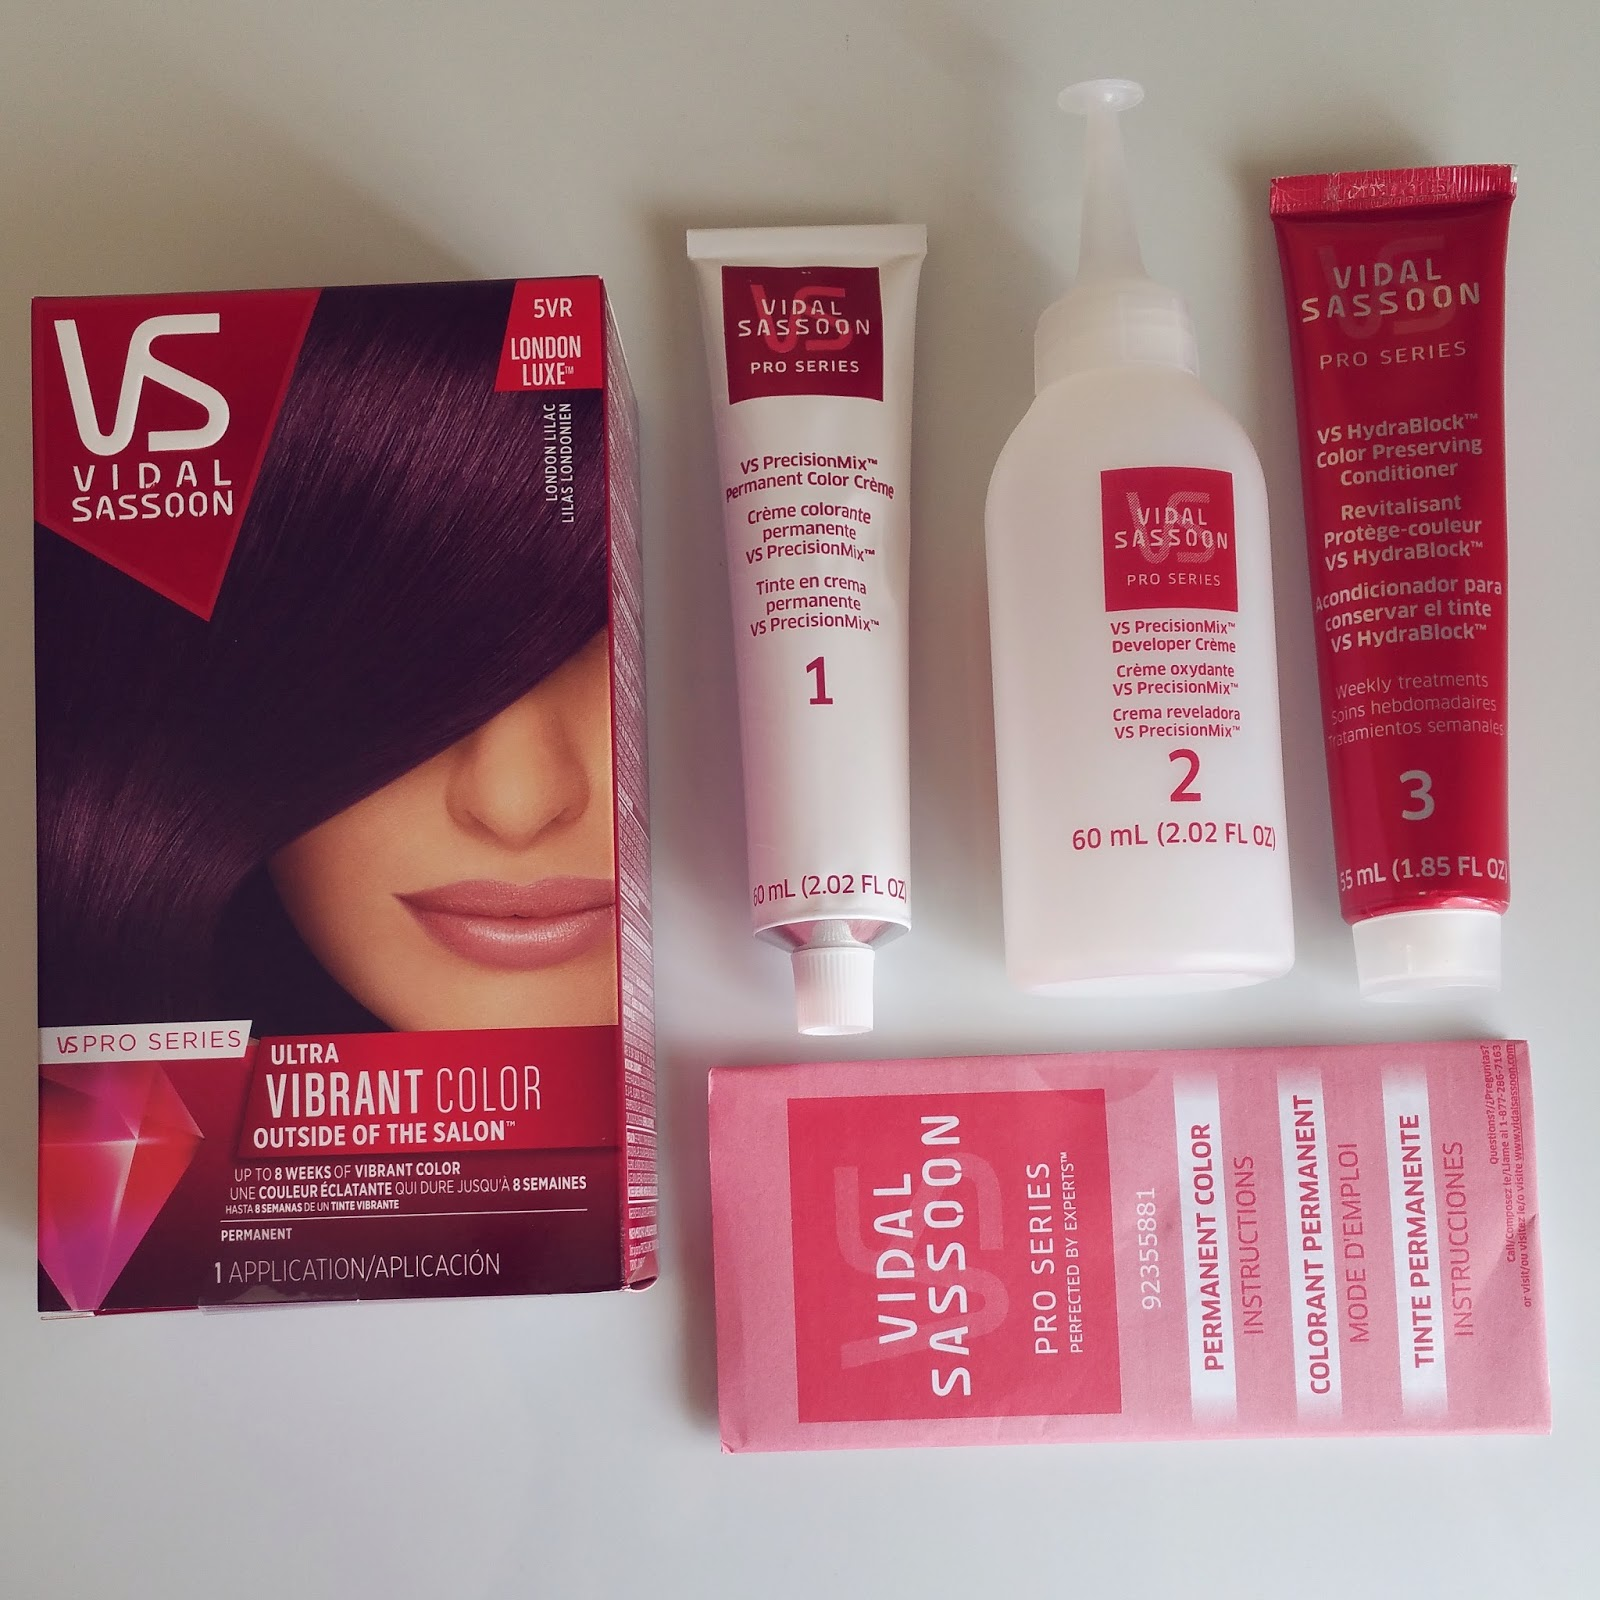 Review Vidal Sassoons London Lilac Pink Petals